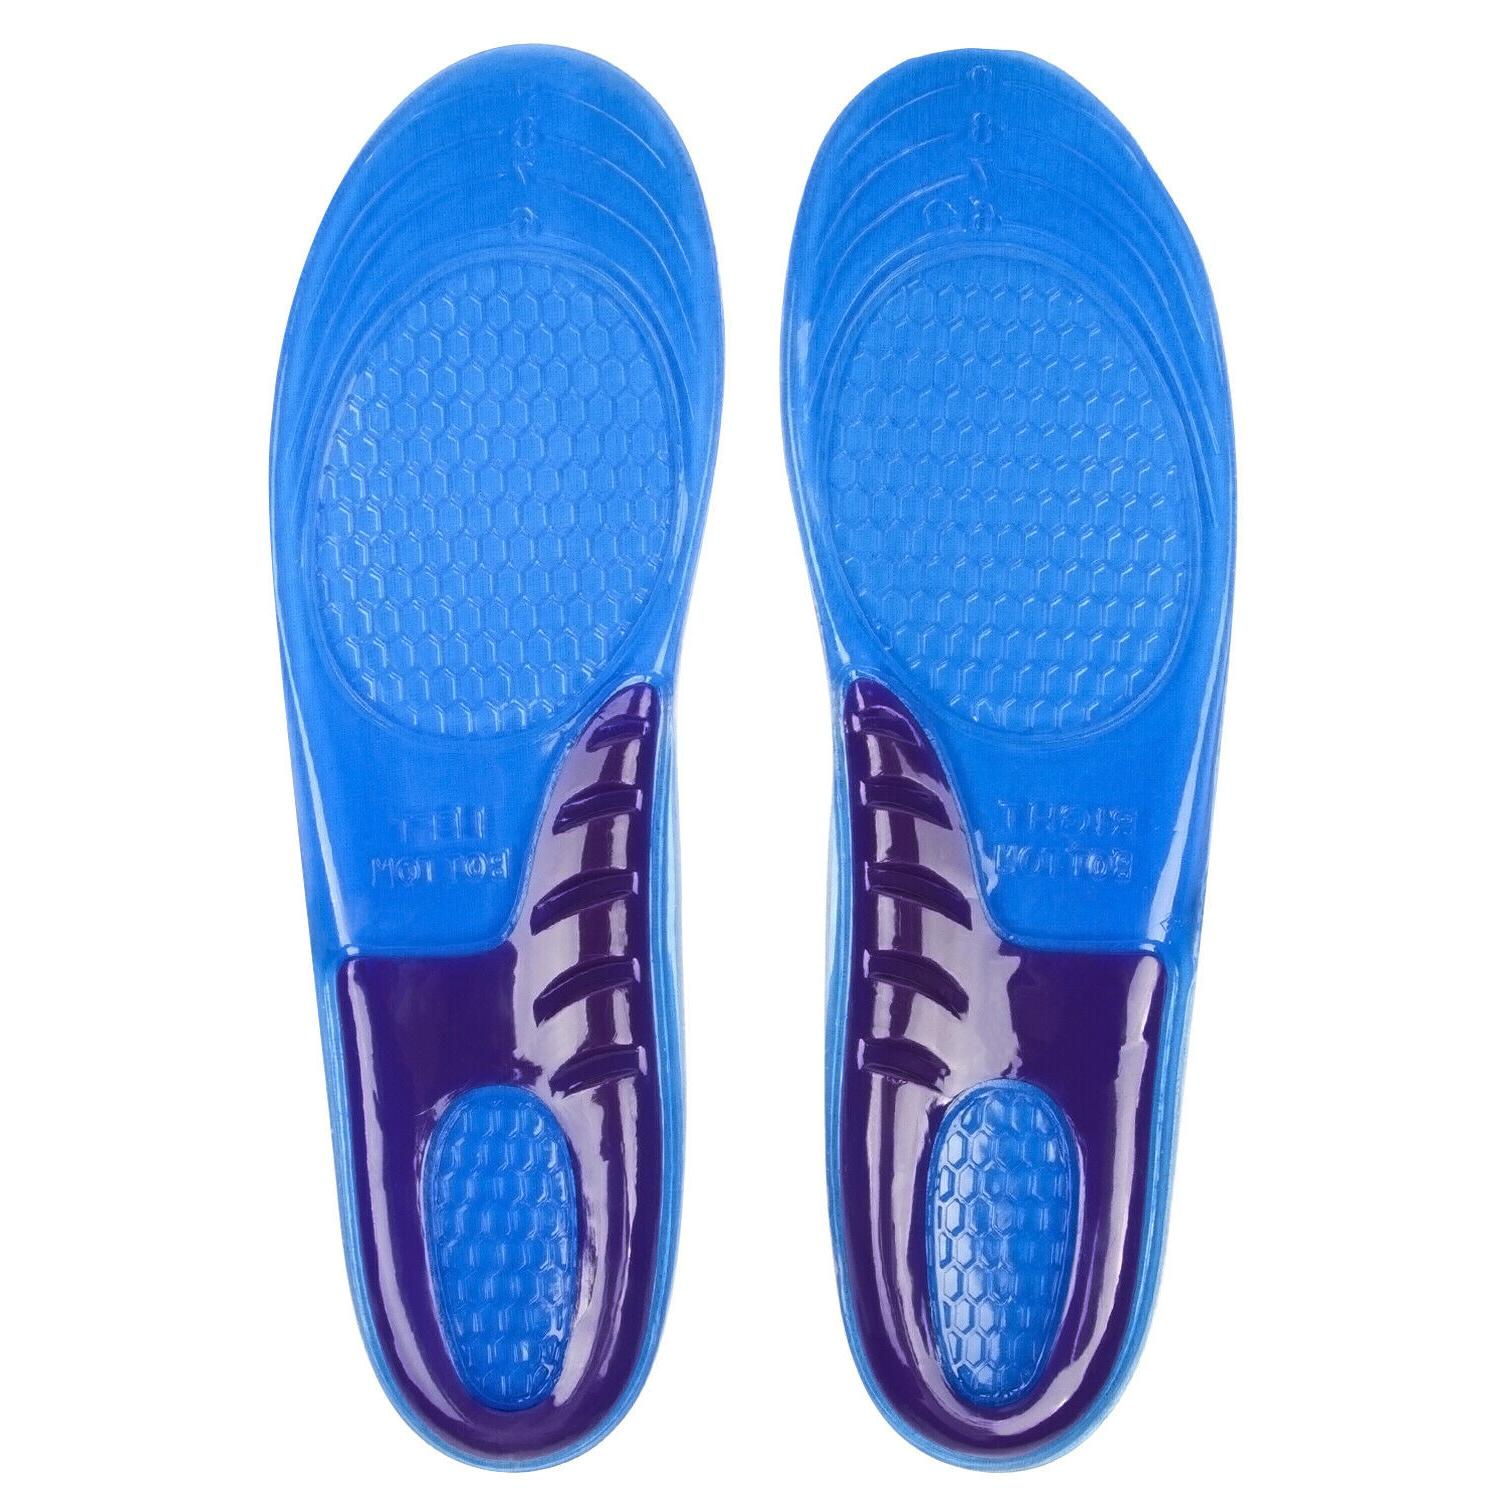 Shoe Inserts Orthotic Support Pads